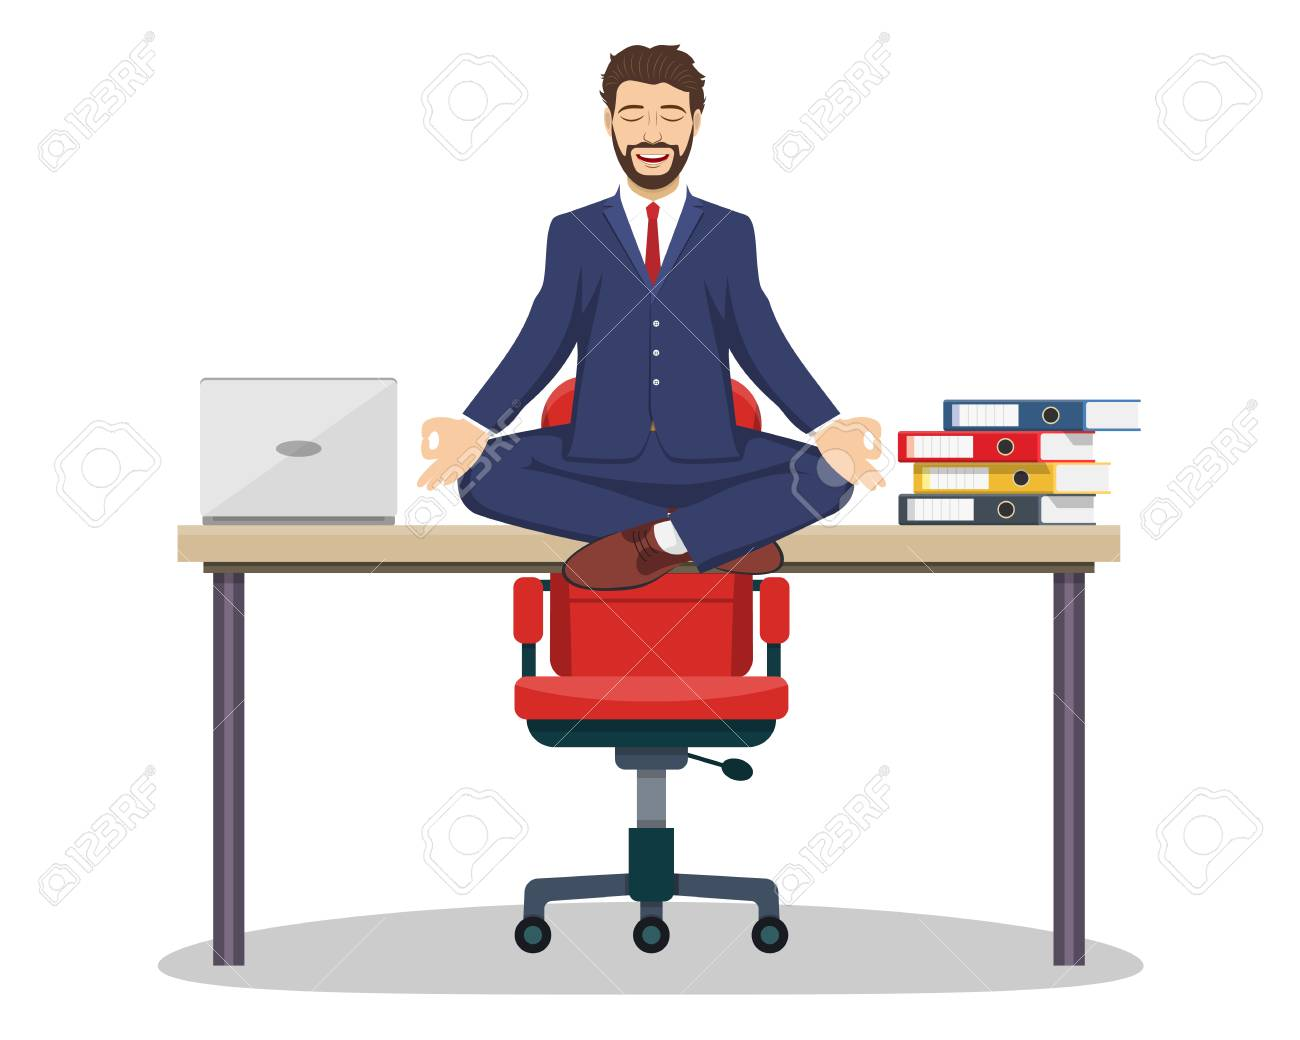 Business Man Executive Manager Sitting On An Office Desk In Royalty Free Cliparts Vectors And Stock Illustration Image 84988687